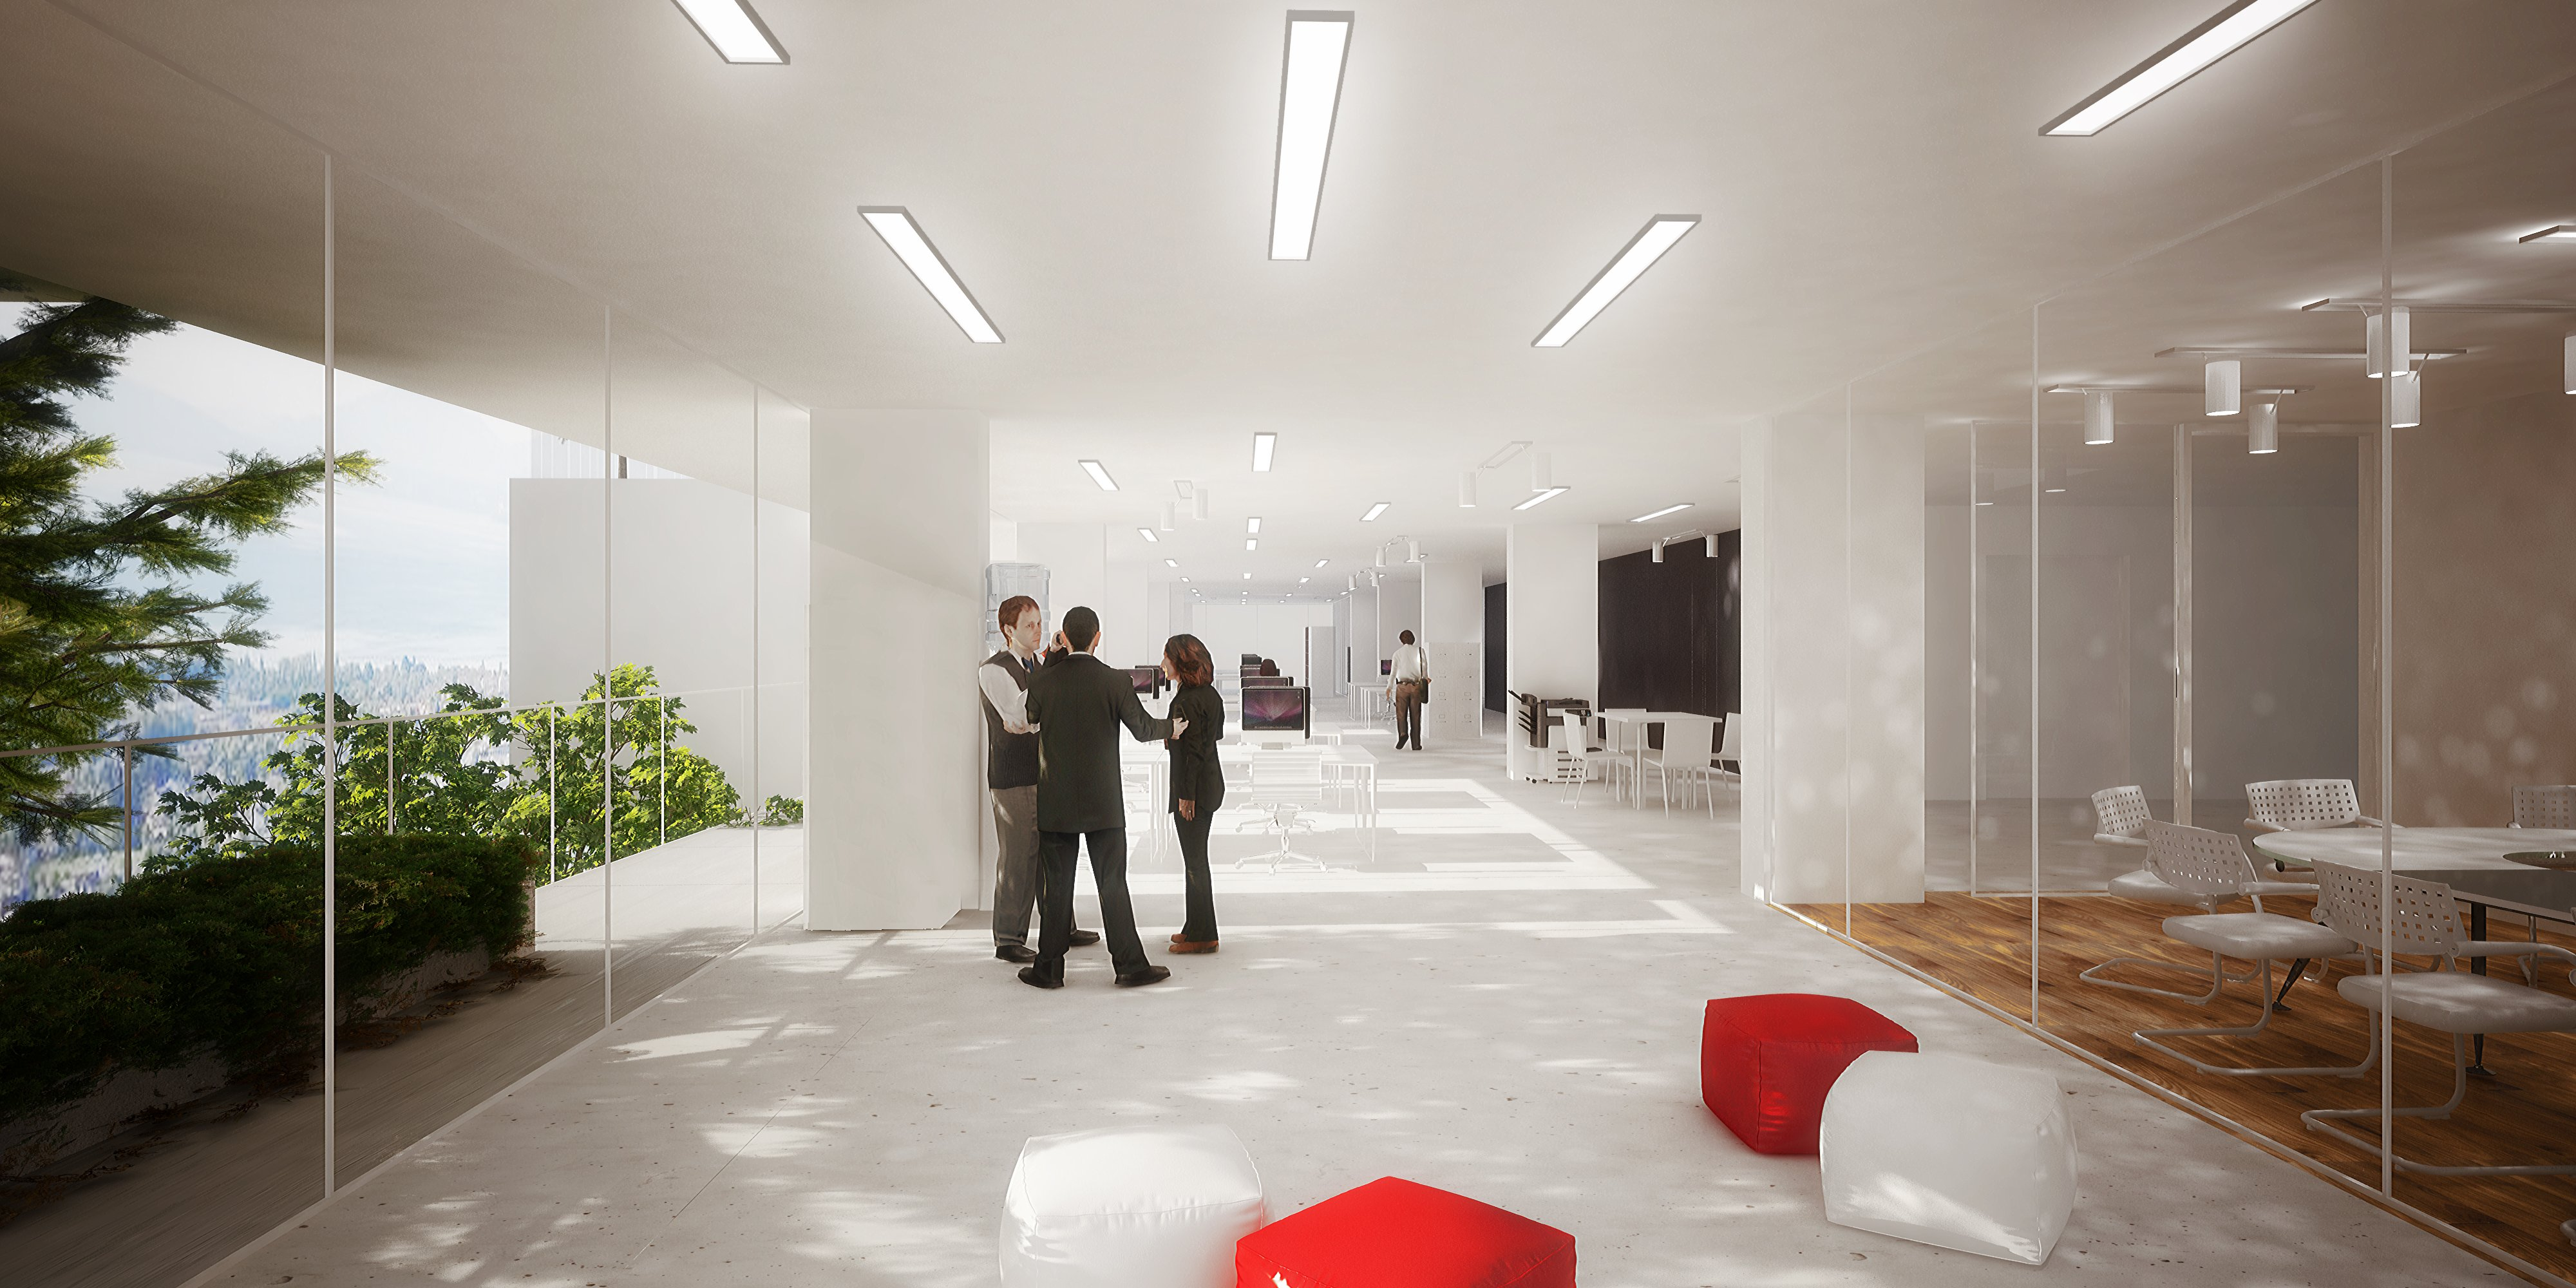 An office space rendering for the Tower of the Cedars project in Lausanne